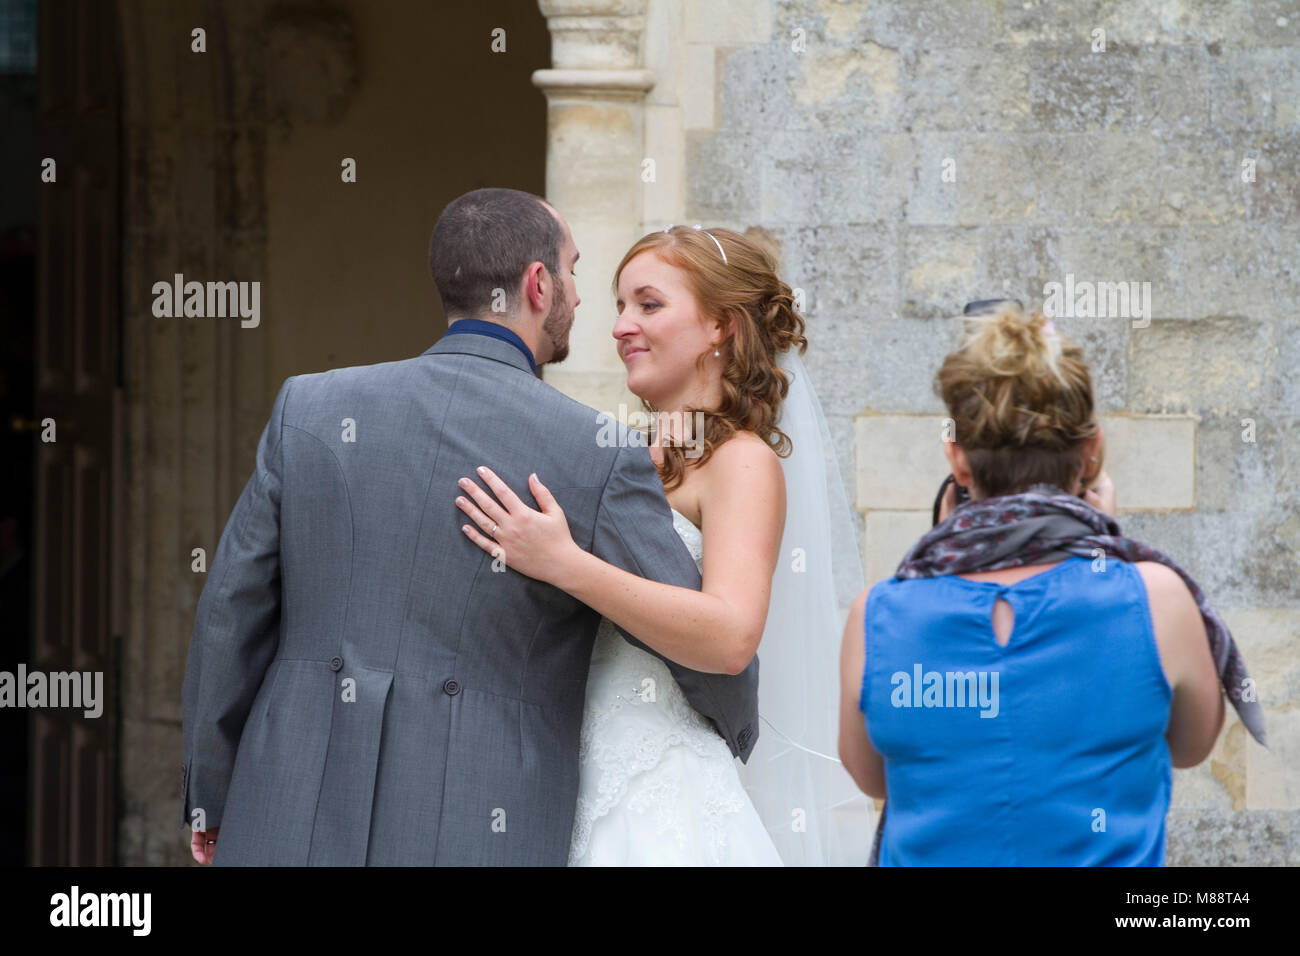 Newly married couple about to kiss - Stock Image